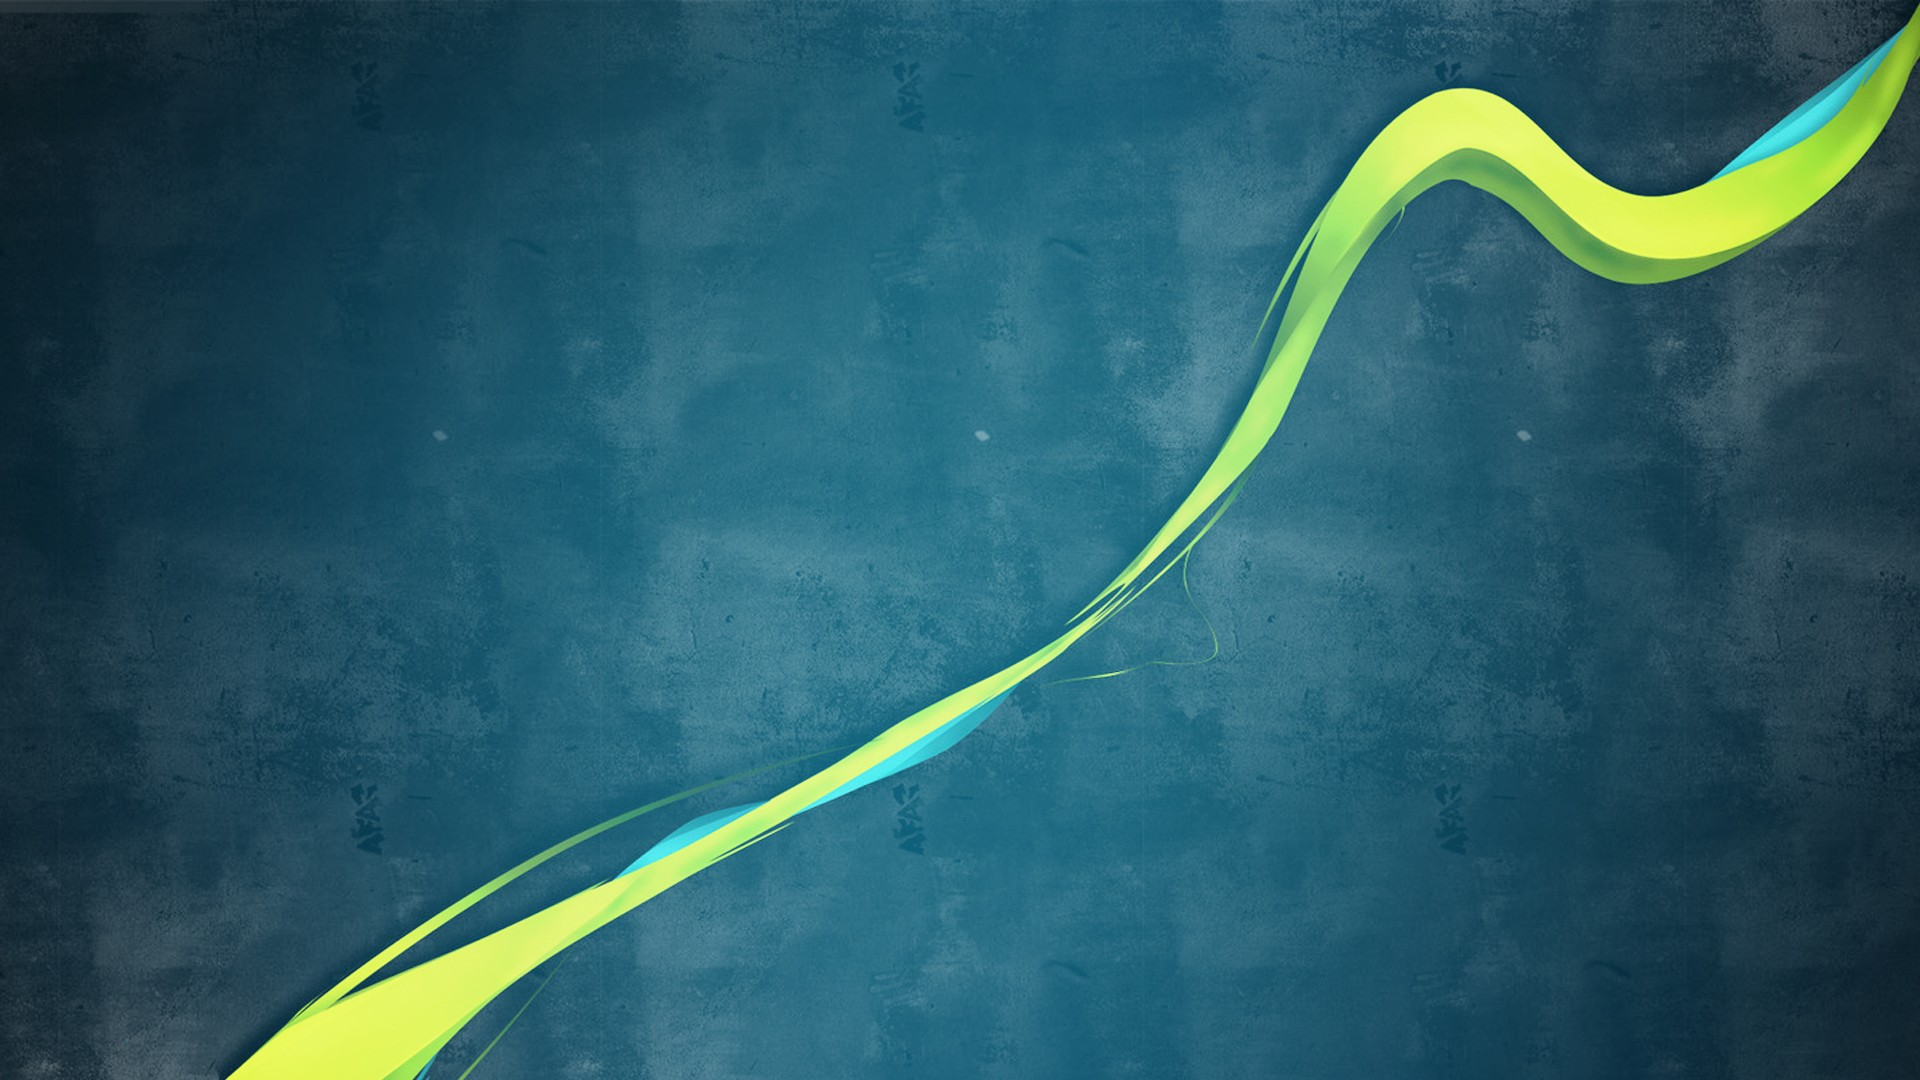 abstract wallpaper 1920x1080 183�� download free cool full hd